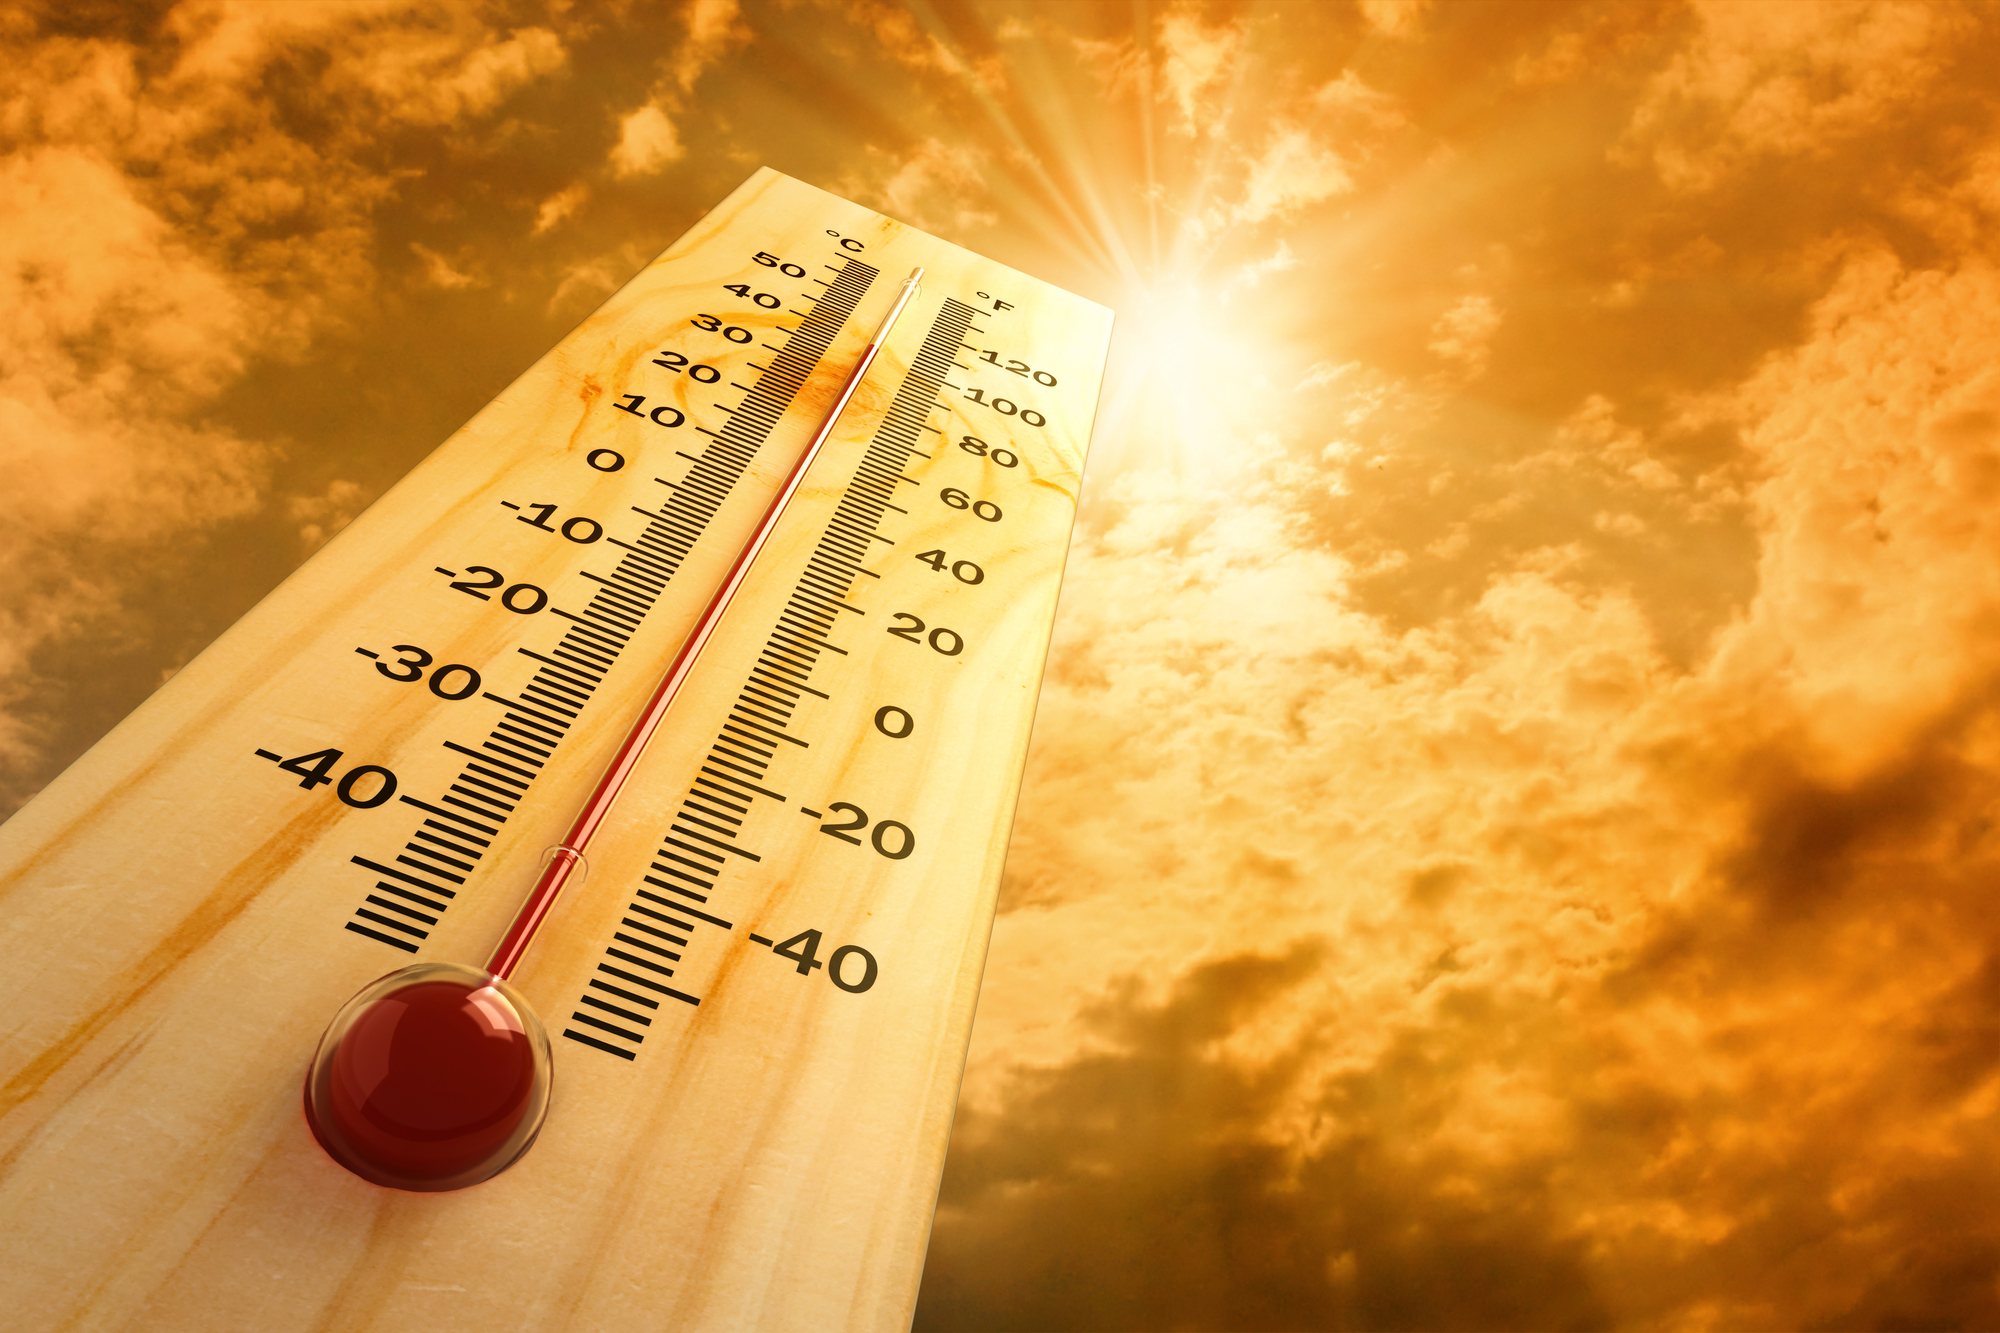 A thermometer shows a rising temperature